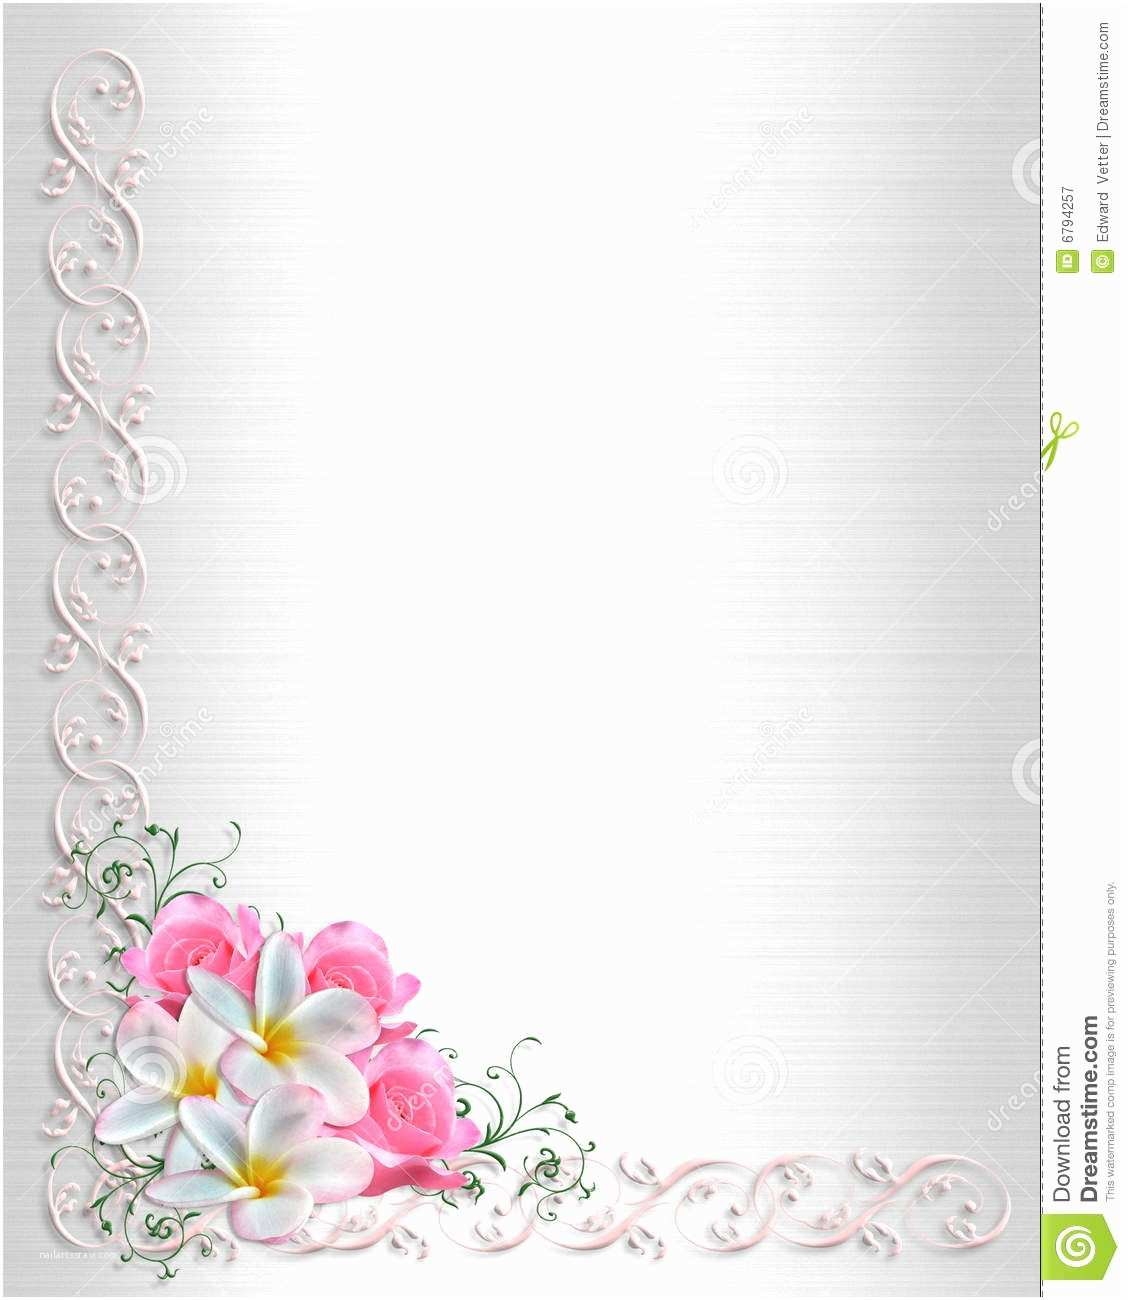 Background Images for Wedding Invitation Cards 14 Wedding Invitation Background Designs Free